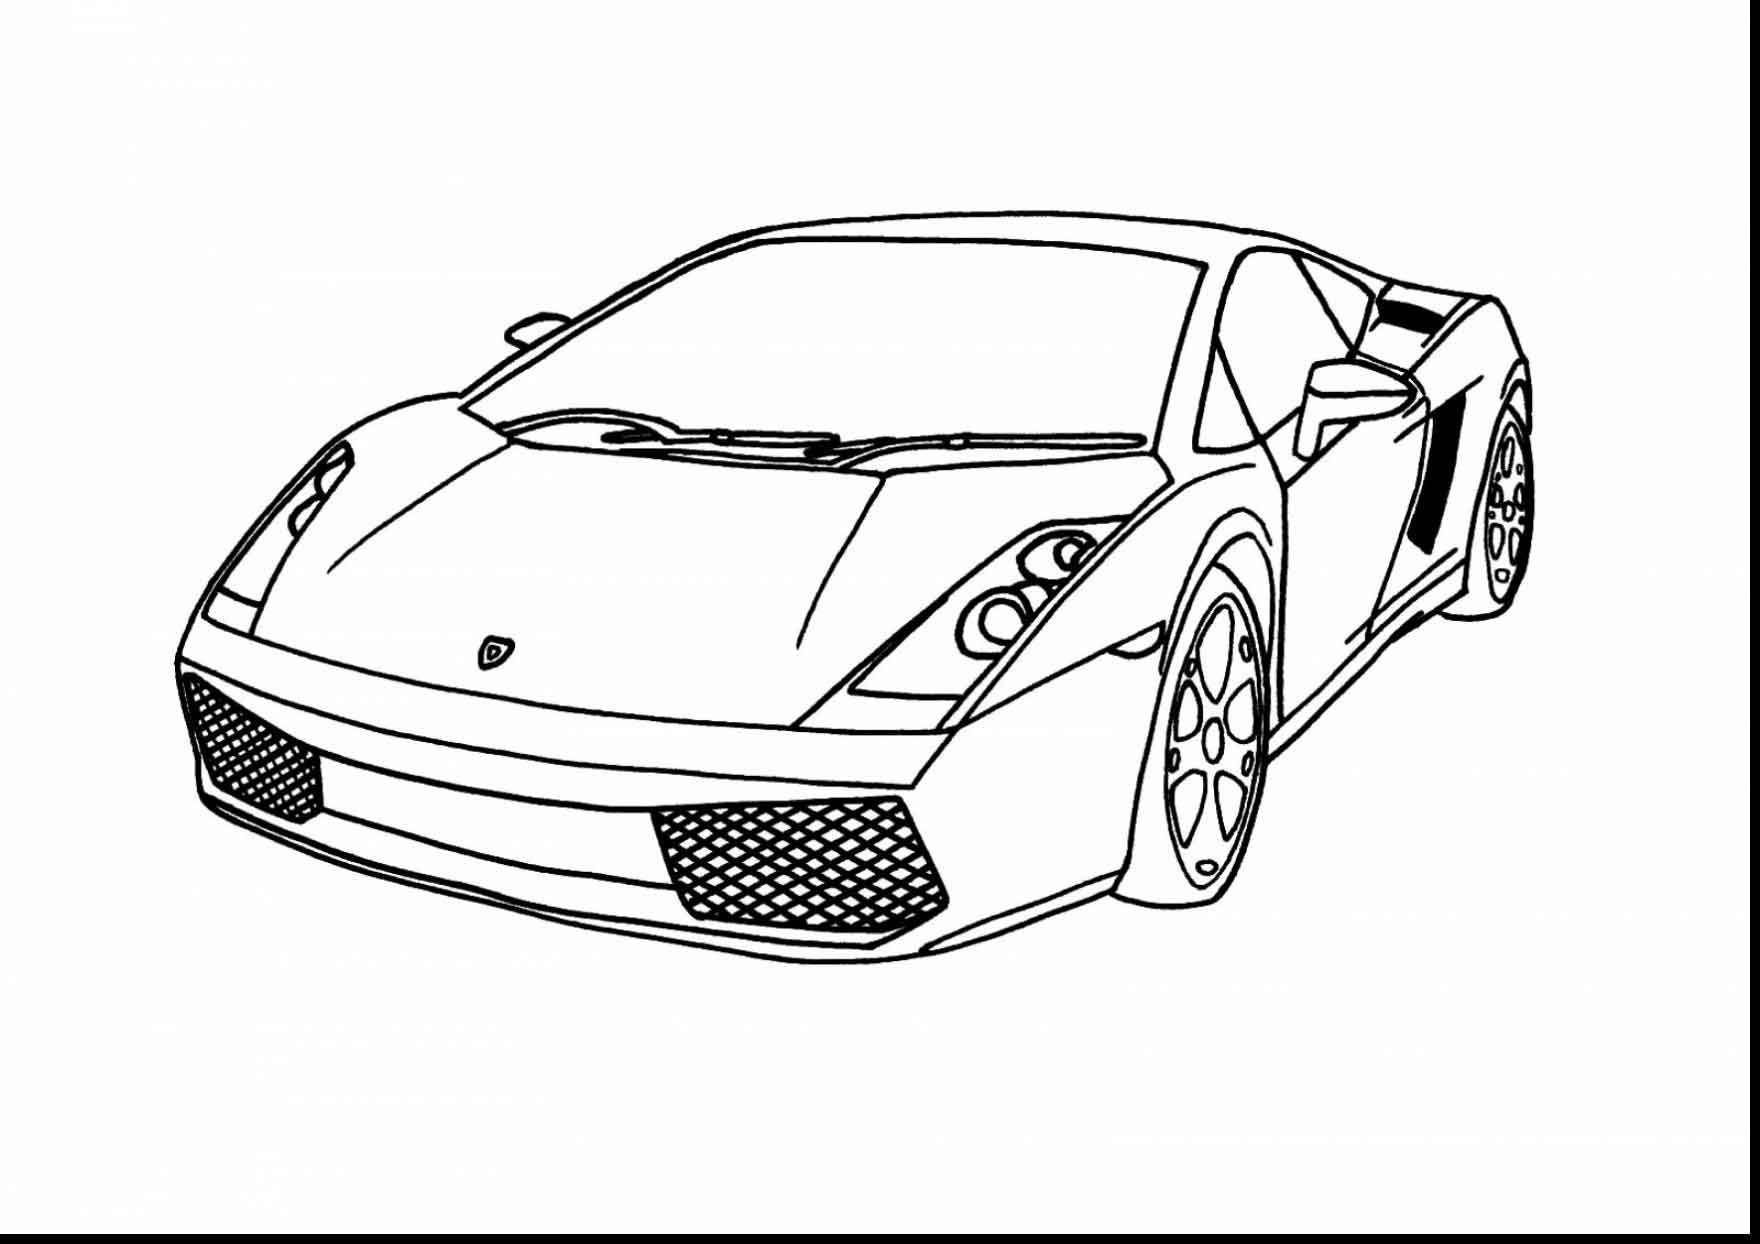 lamborghini coloring pages to print free printable lamborghini coloring pages for kids pages print to coloring lamborghini